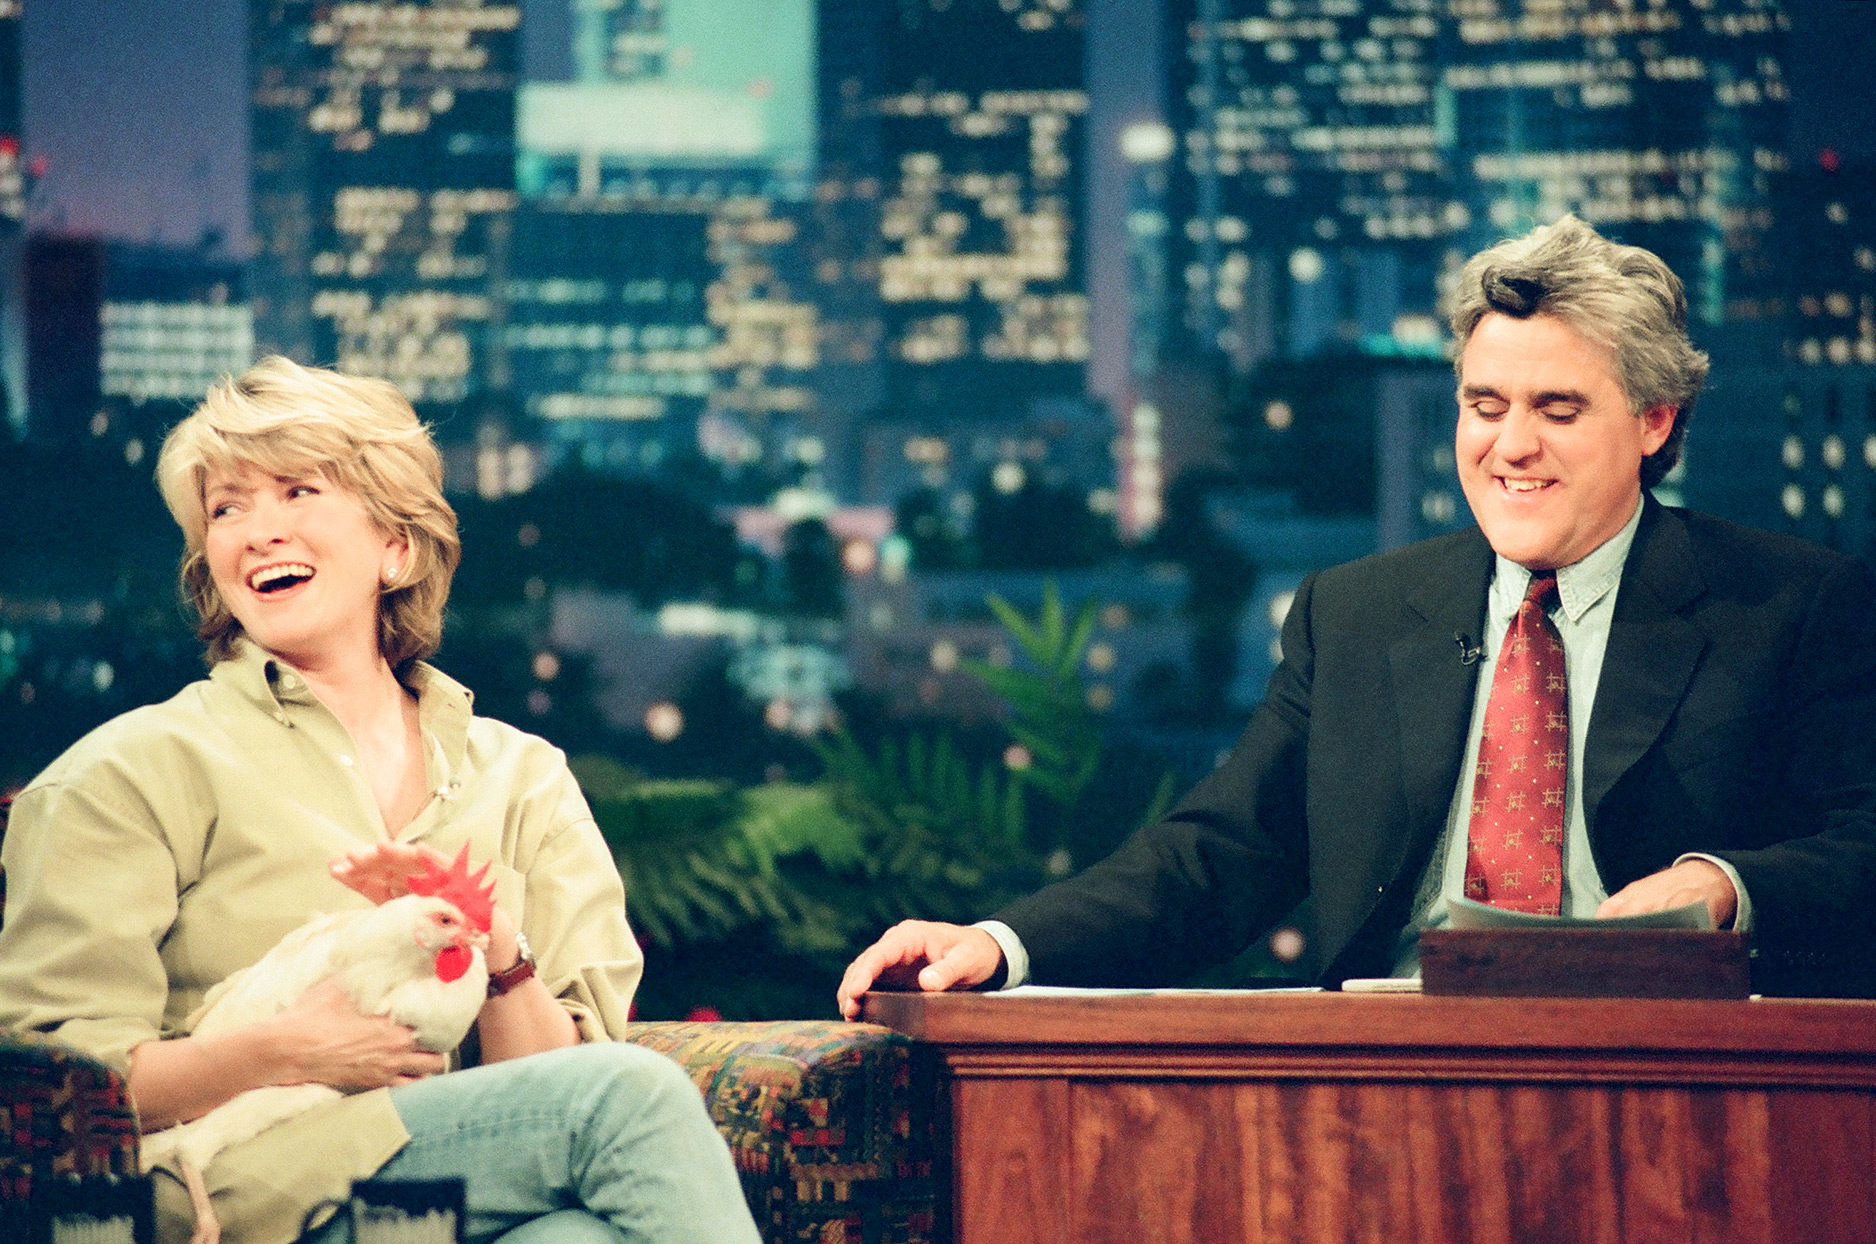 Martha Stewart holding a chicken on Jay Leno